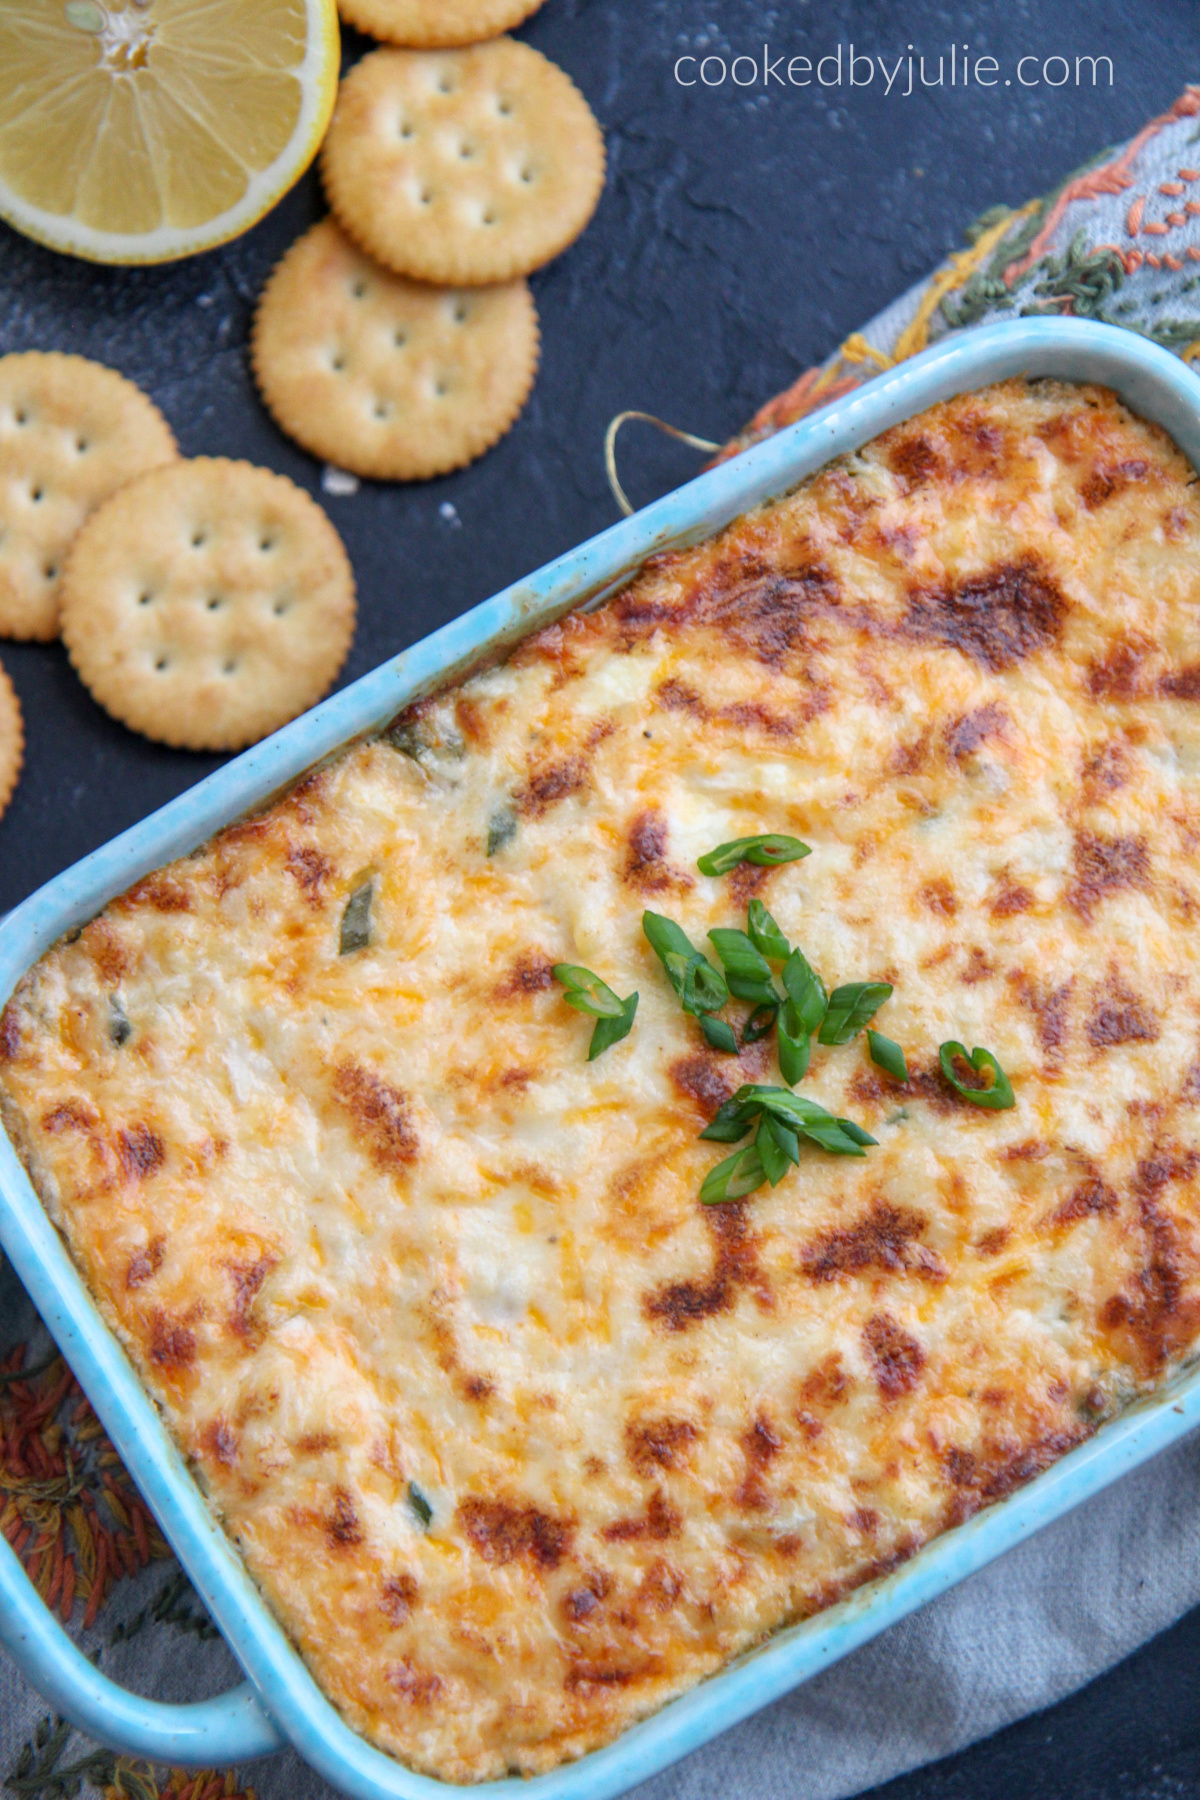 Baked Cheesy Hot Crab Dip Video Cooked By Julie